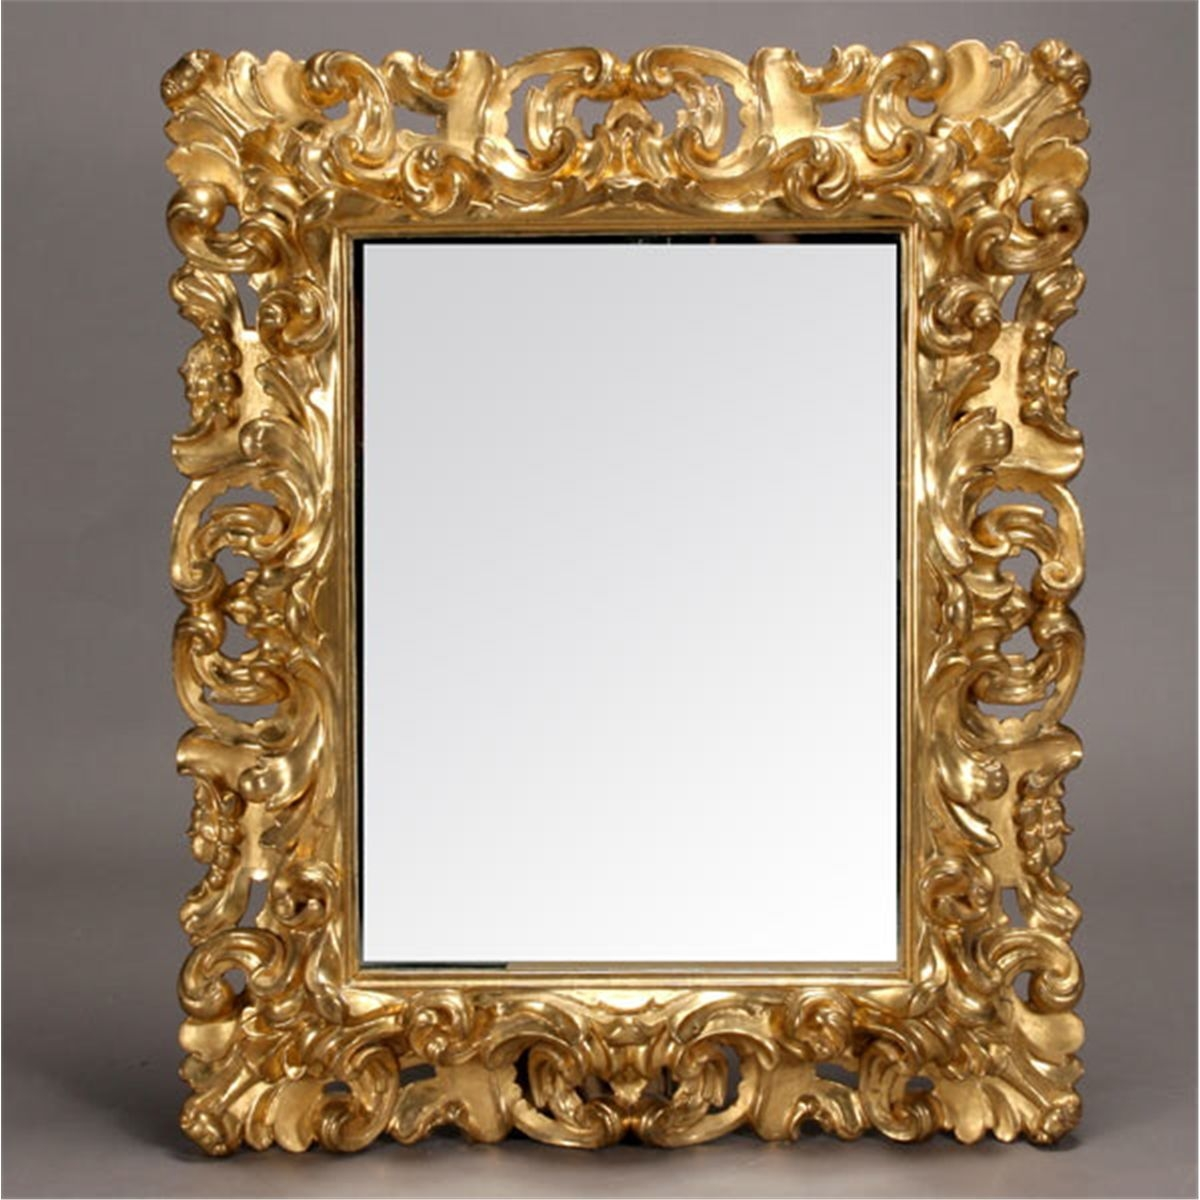 If It Aint Baroque Dont Fix It With Regard To Baroque Style Mirror (Image 13 of 15)